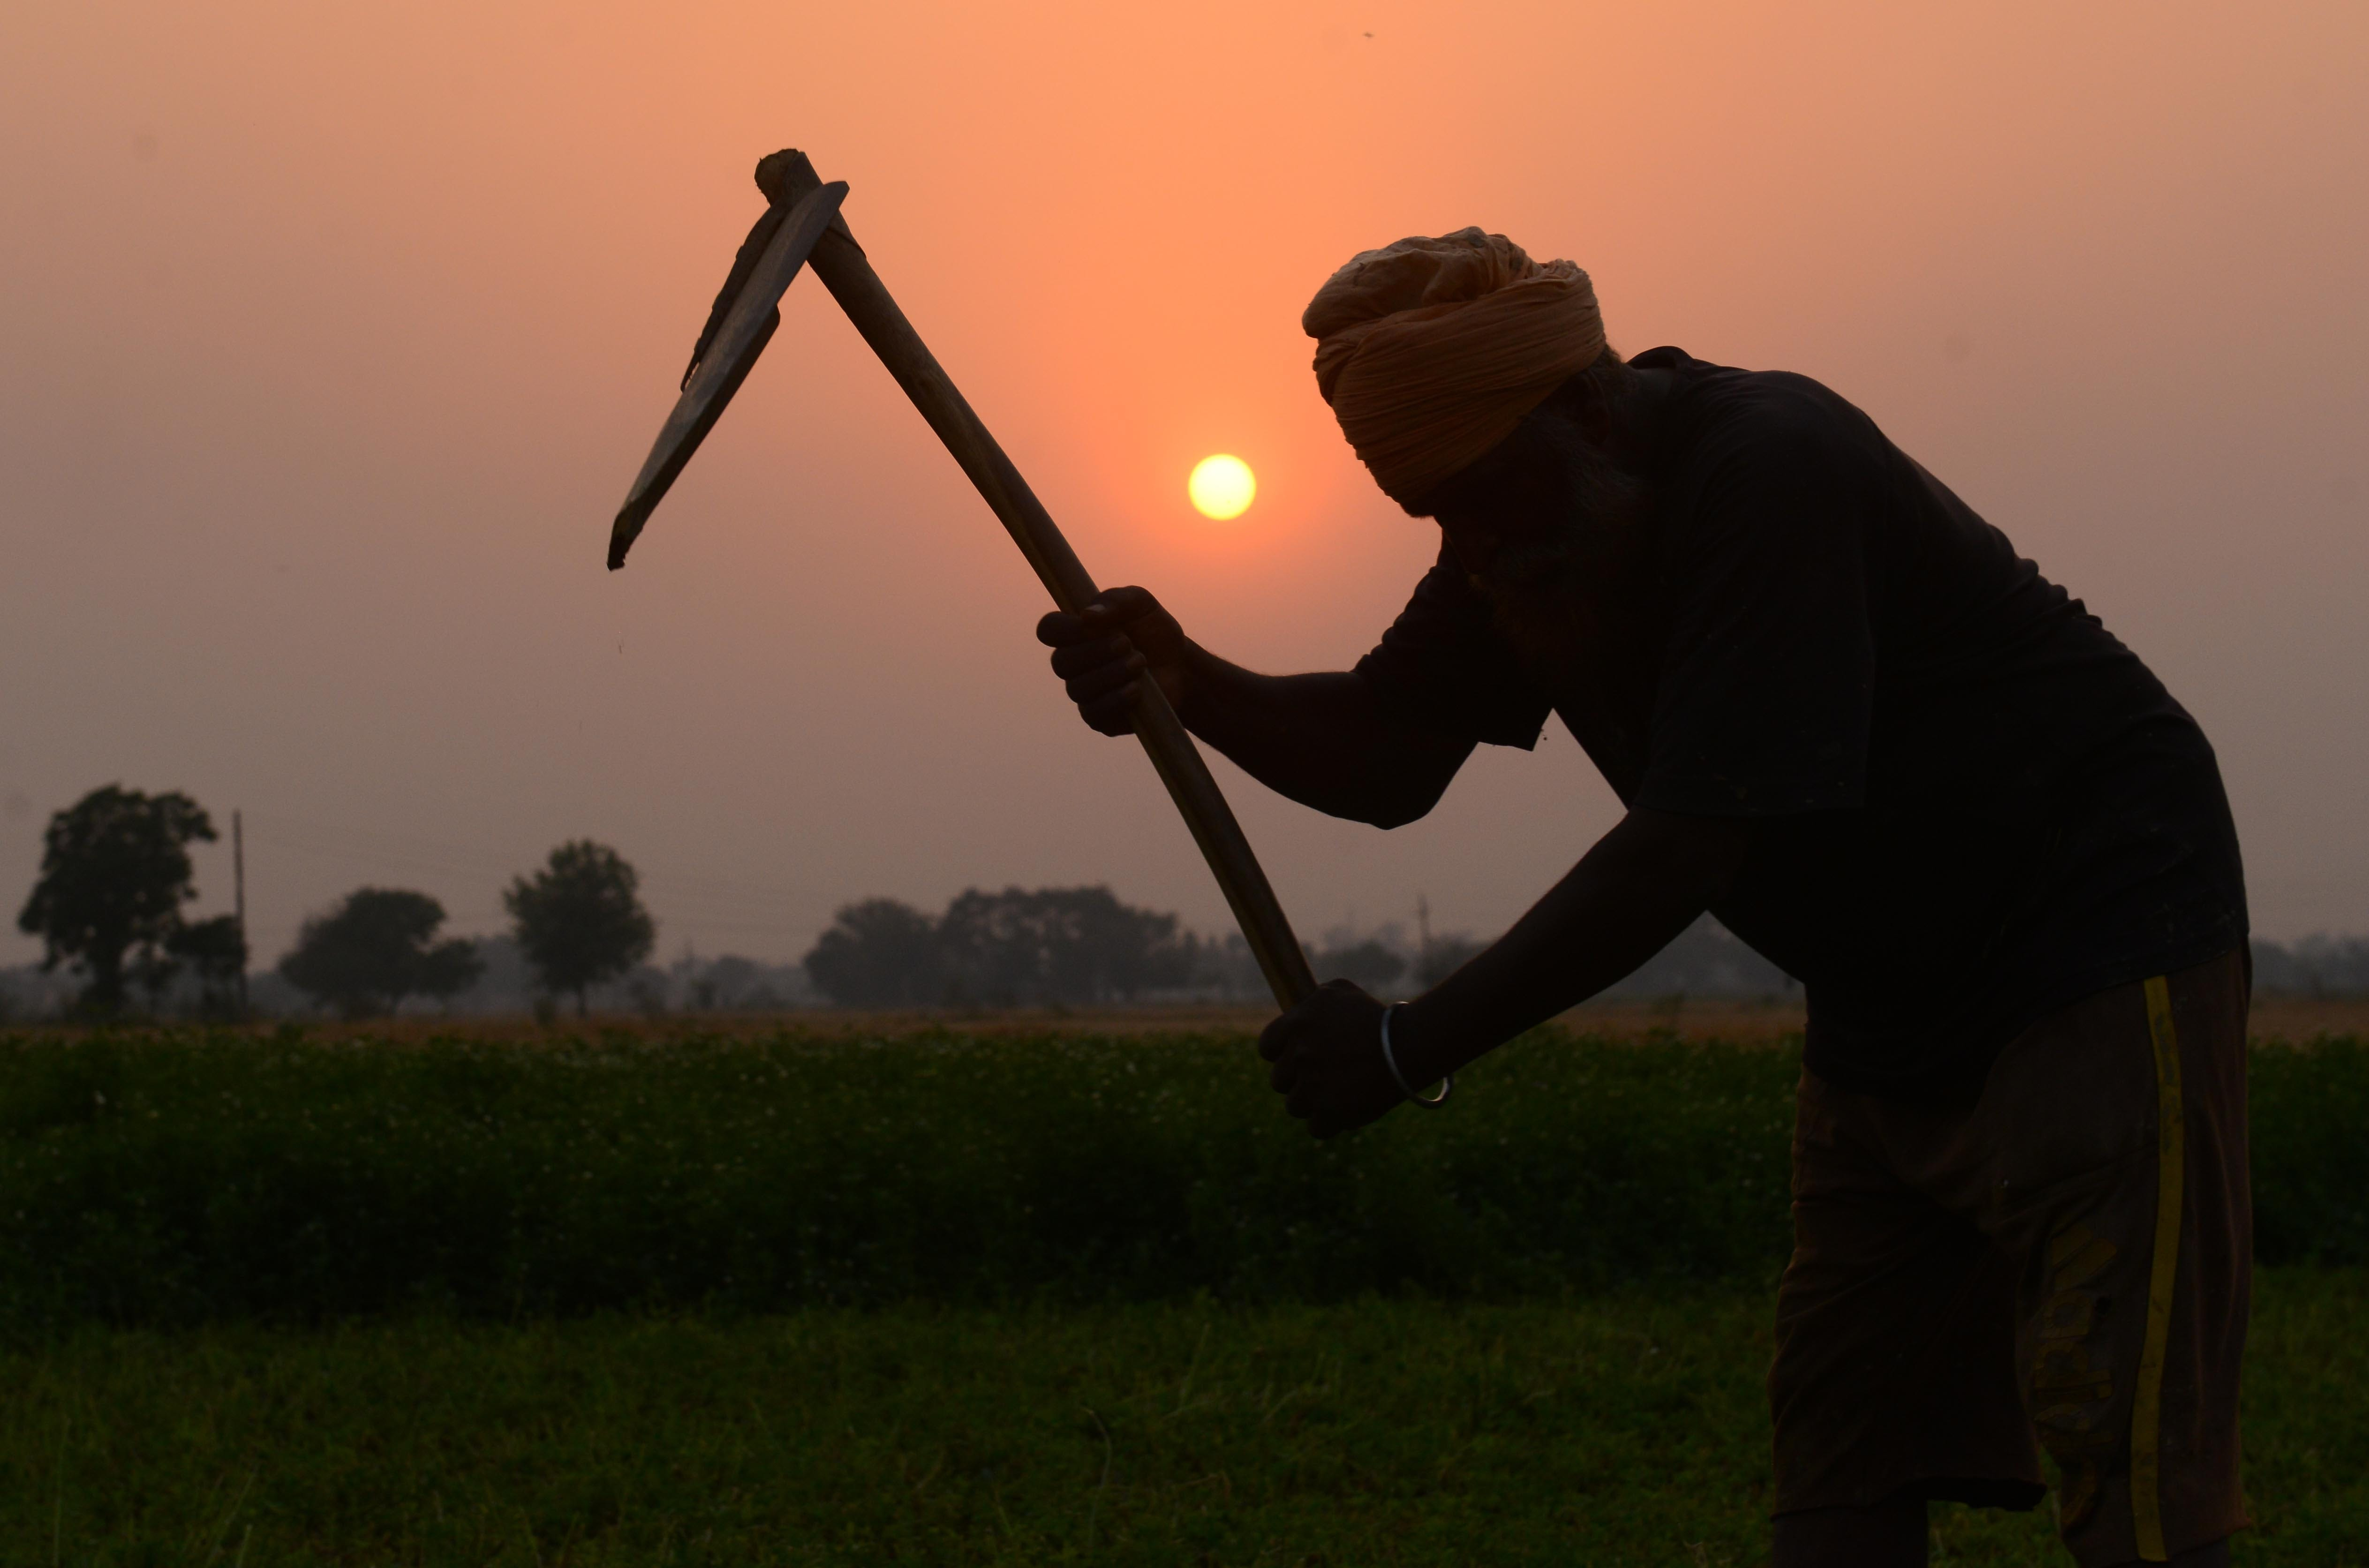 A farmer works in a field on the outskirts of Amritsar, India.